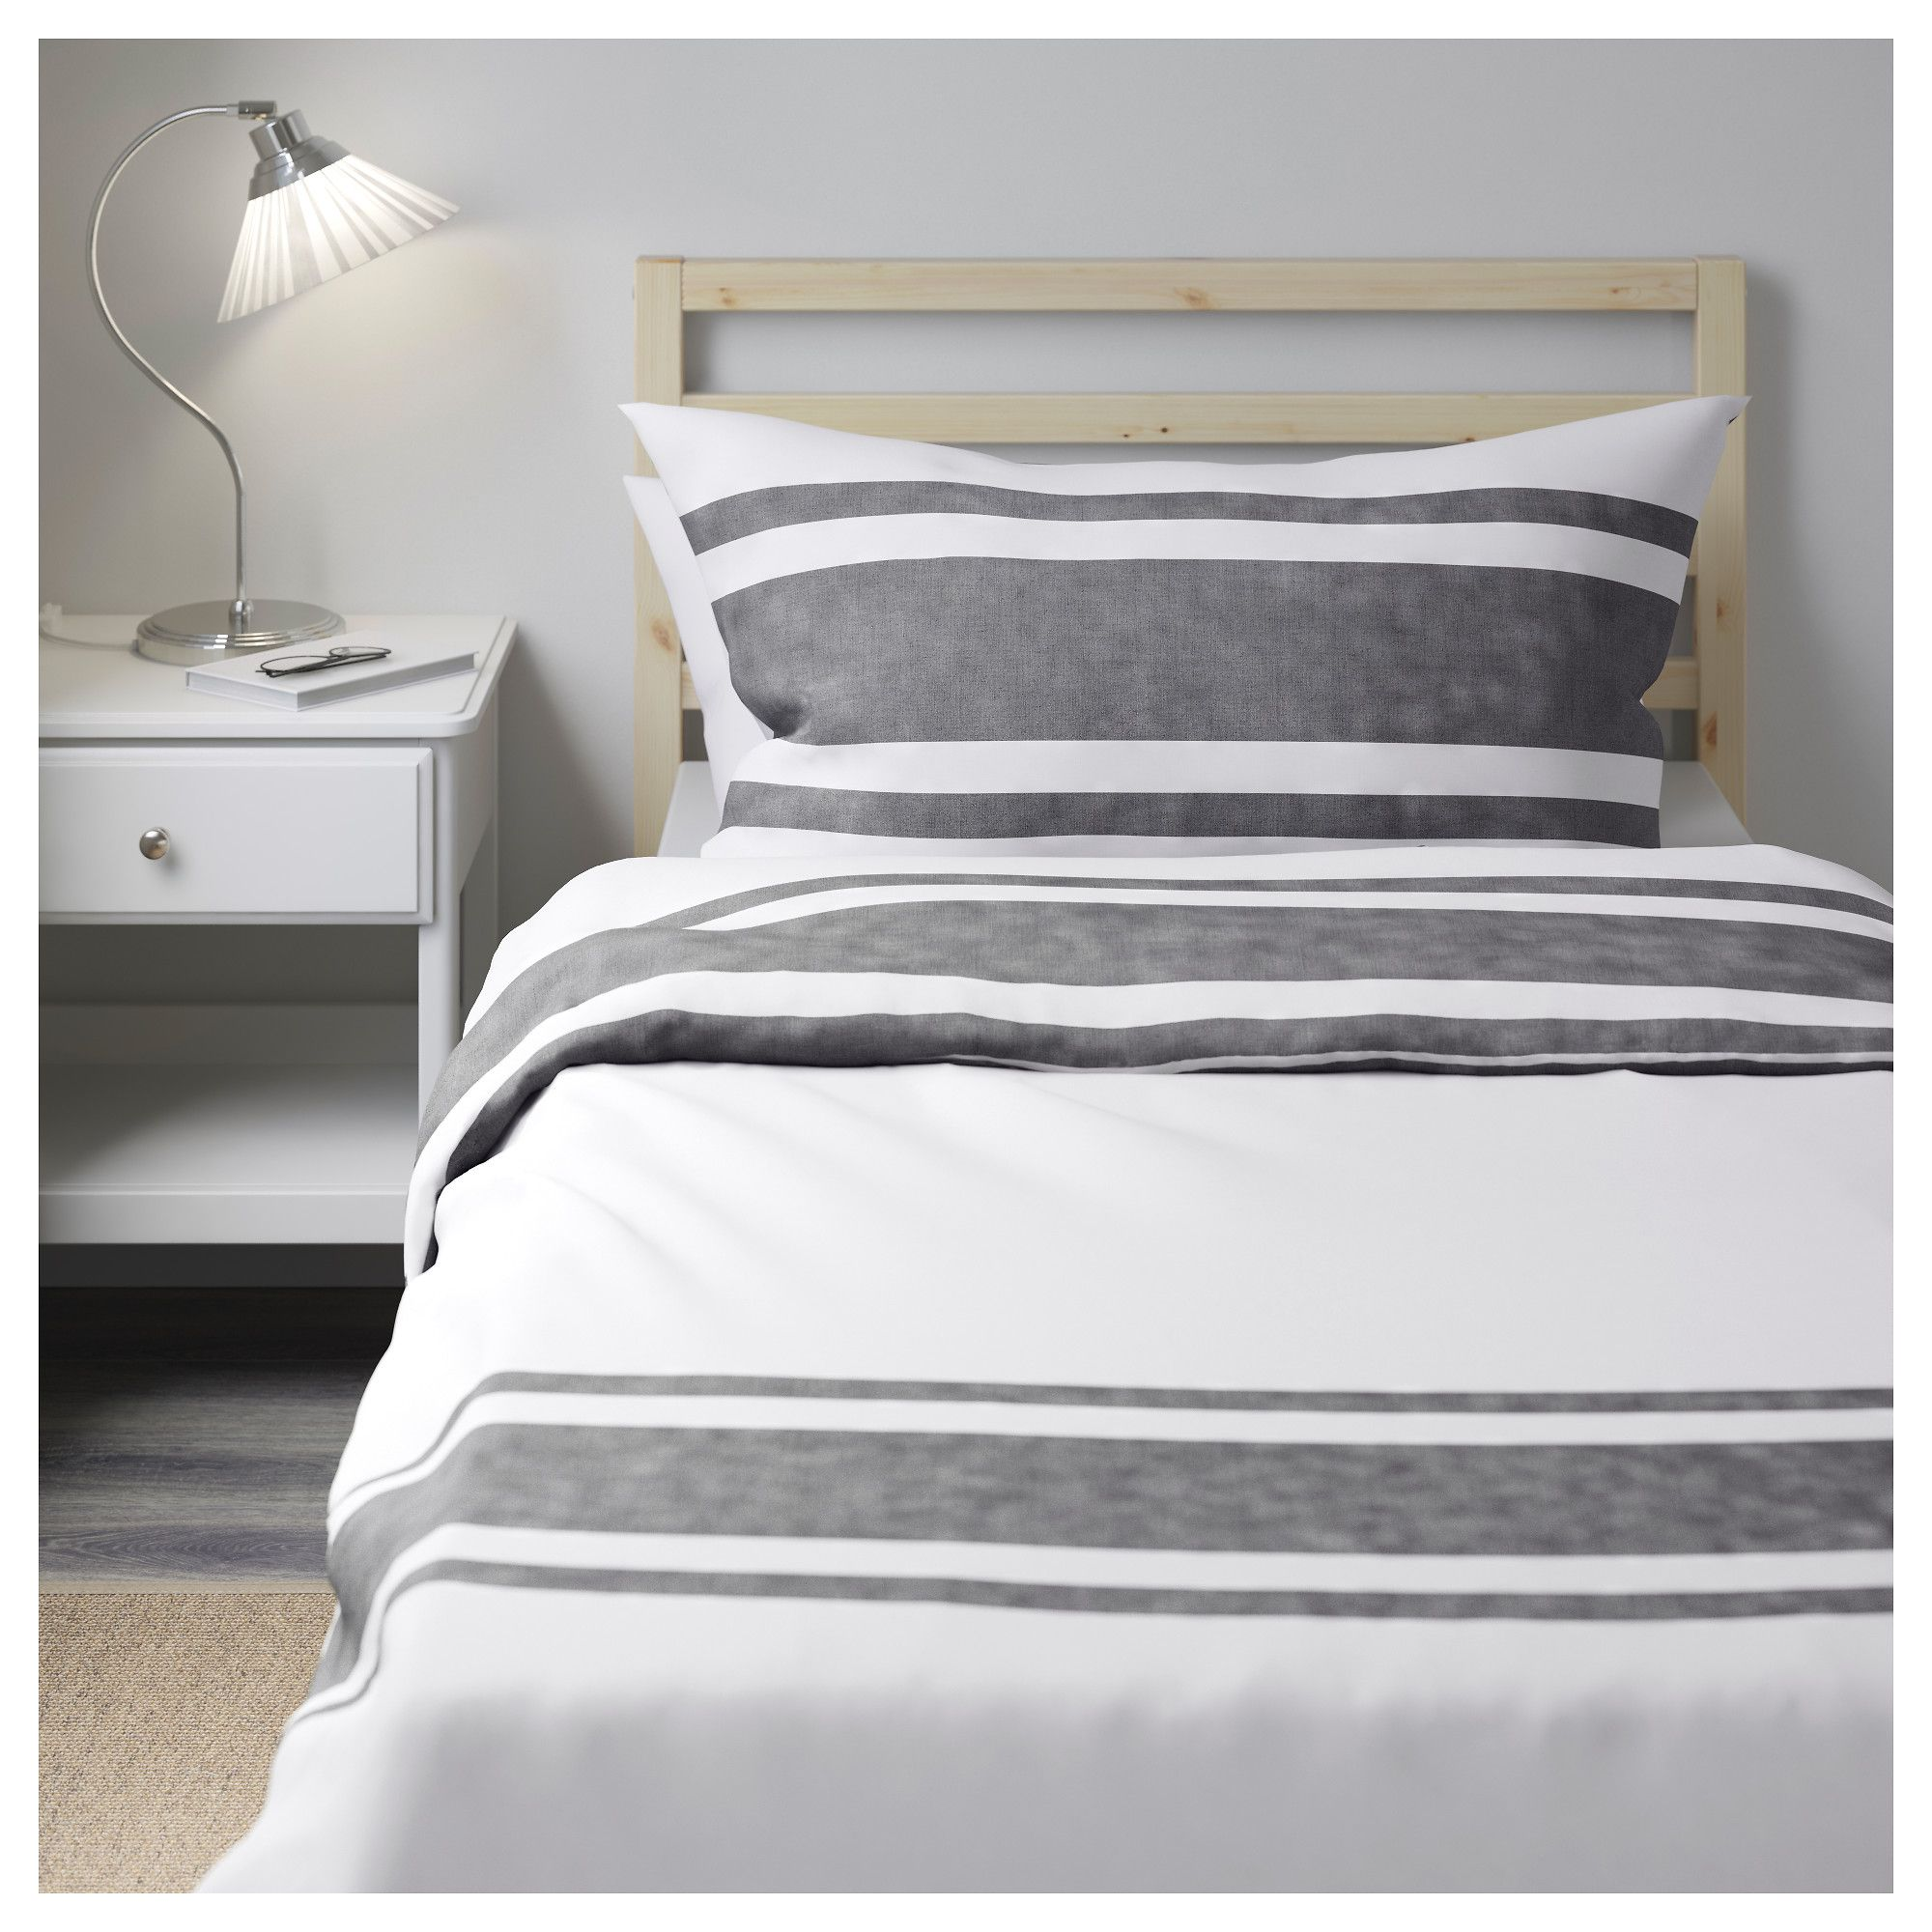 Furniture and Home Furnishings Bed linen design, Cool